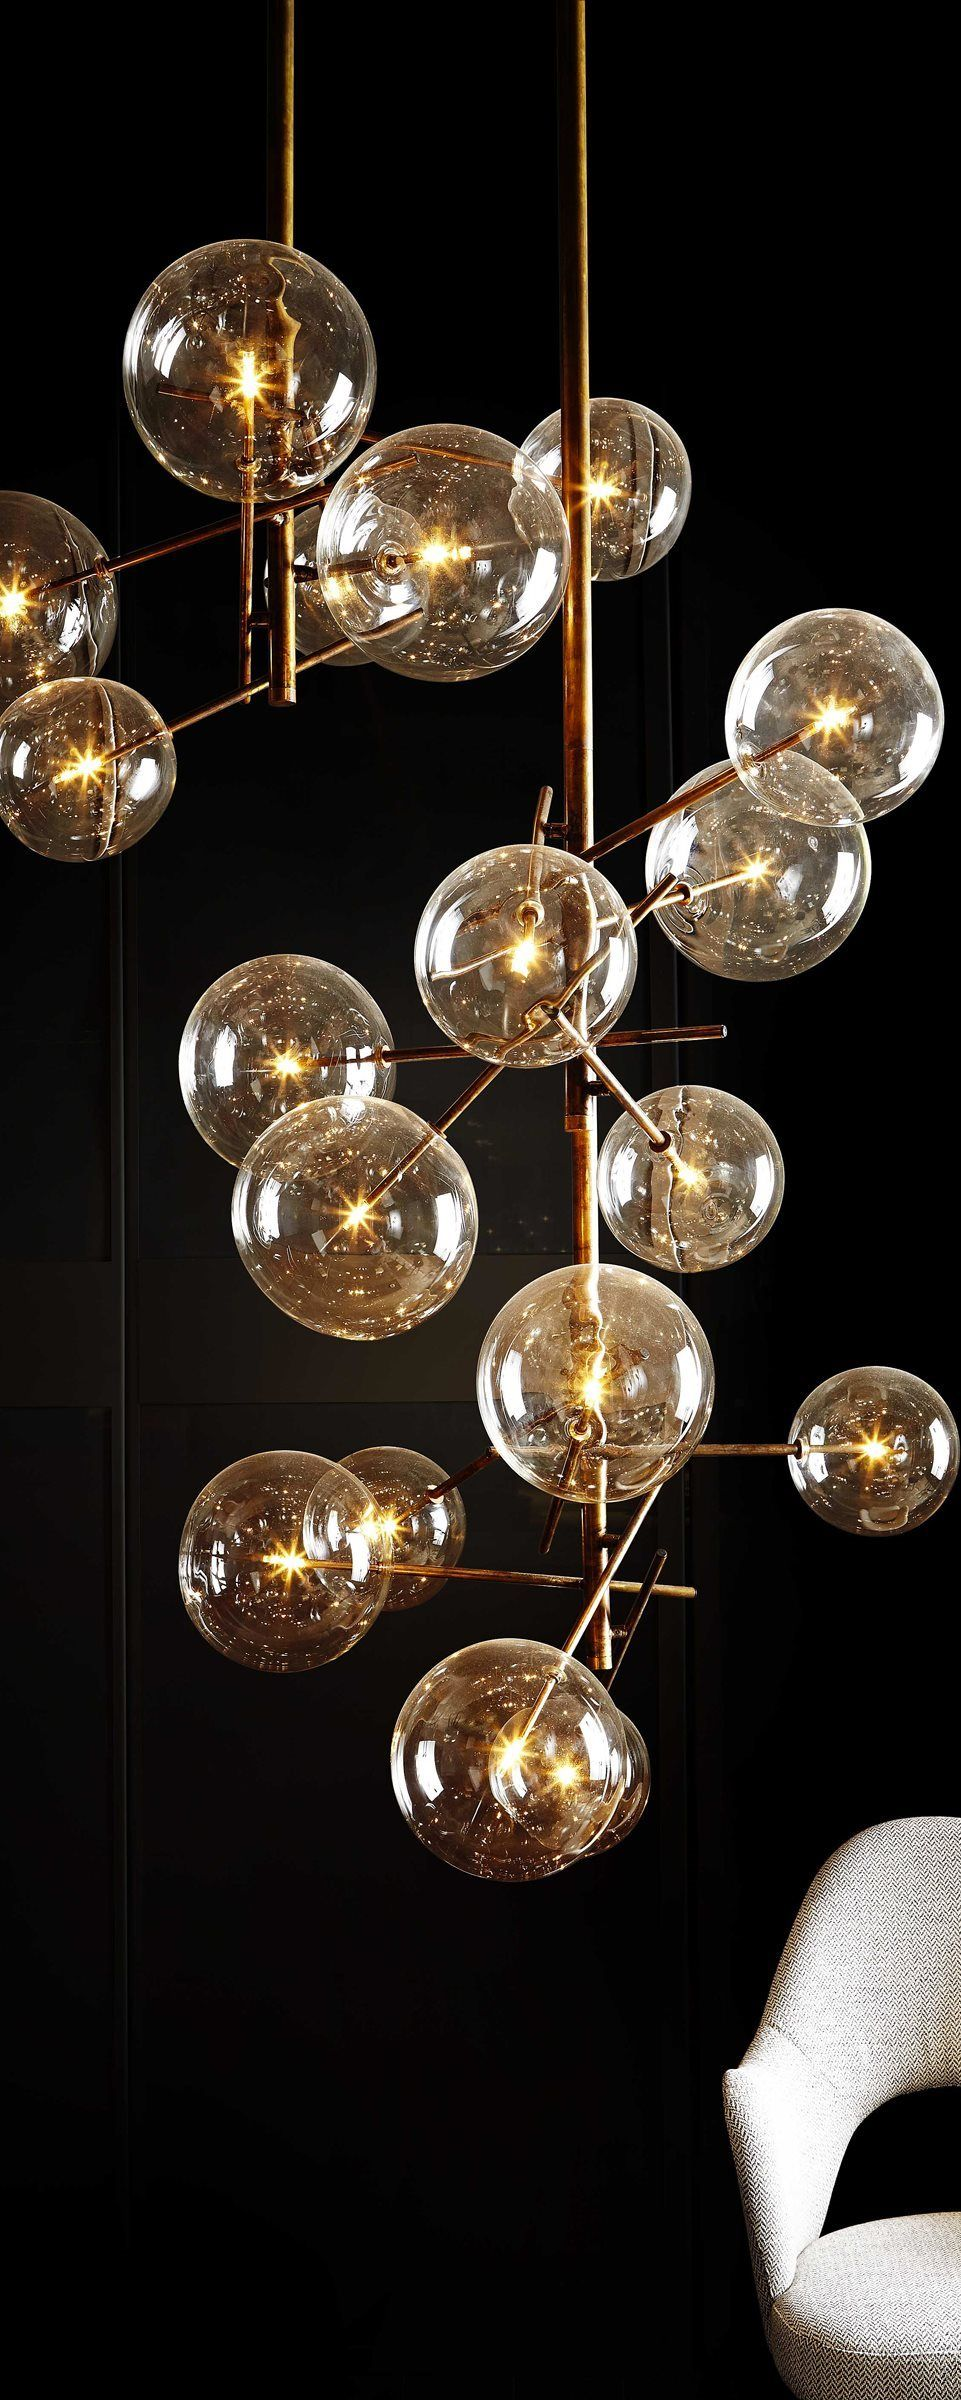 Pendant Lamps Made From Hand Blown Glass And Naturally Stained Brass Bolle Designed By Massimo Casta Illuminazione A Sospensione Bolle Illuminazione Moderna